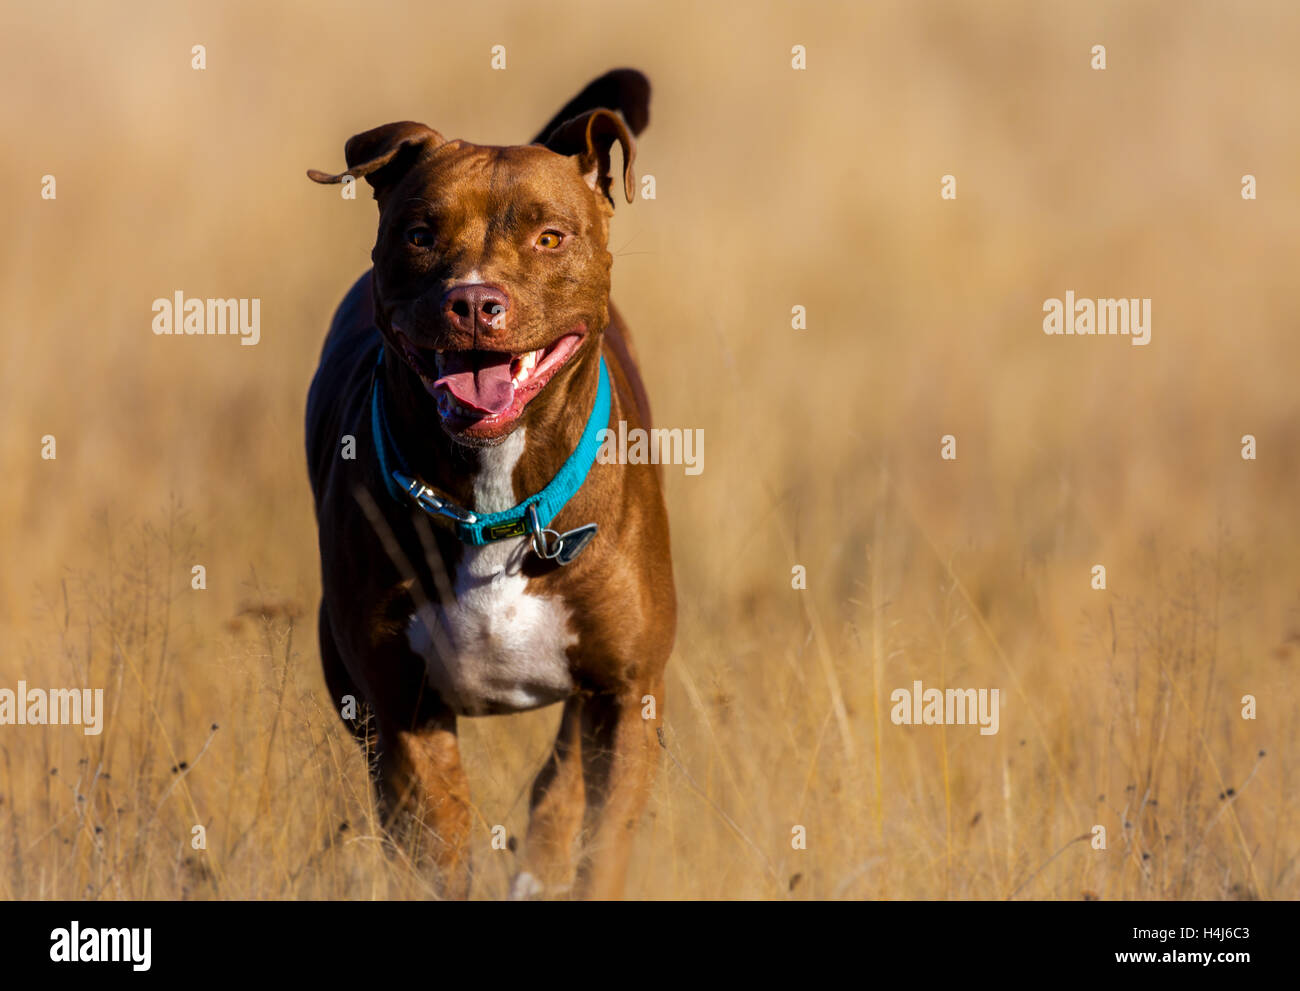 Staffordshire Terrier runs over a brown field - Stock Image